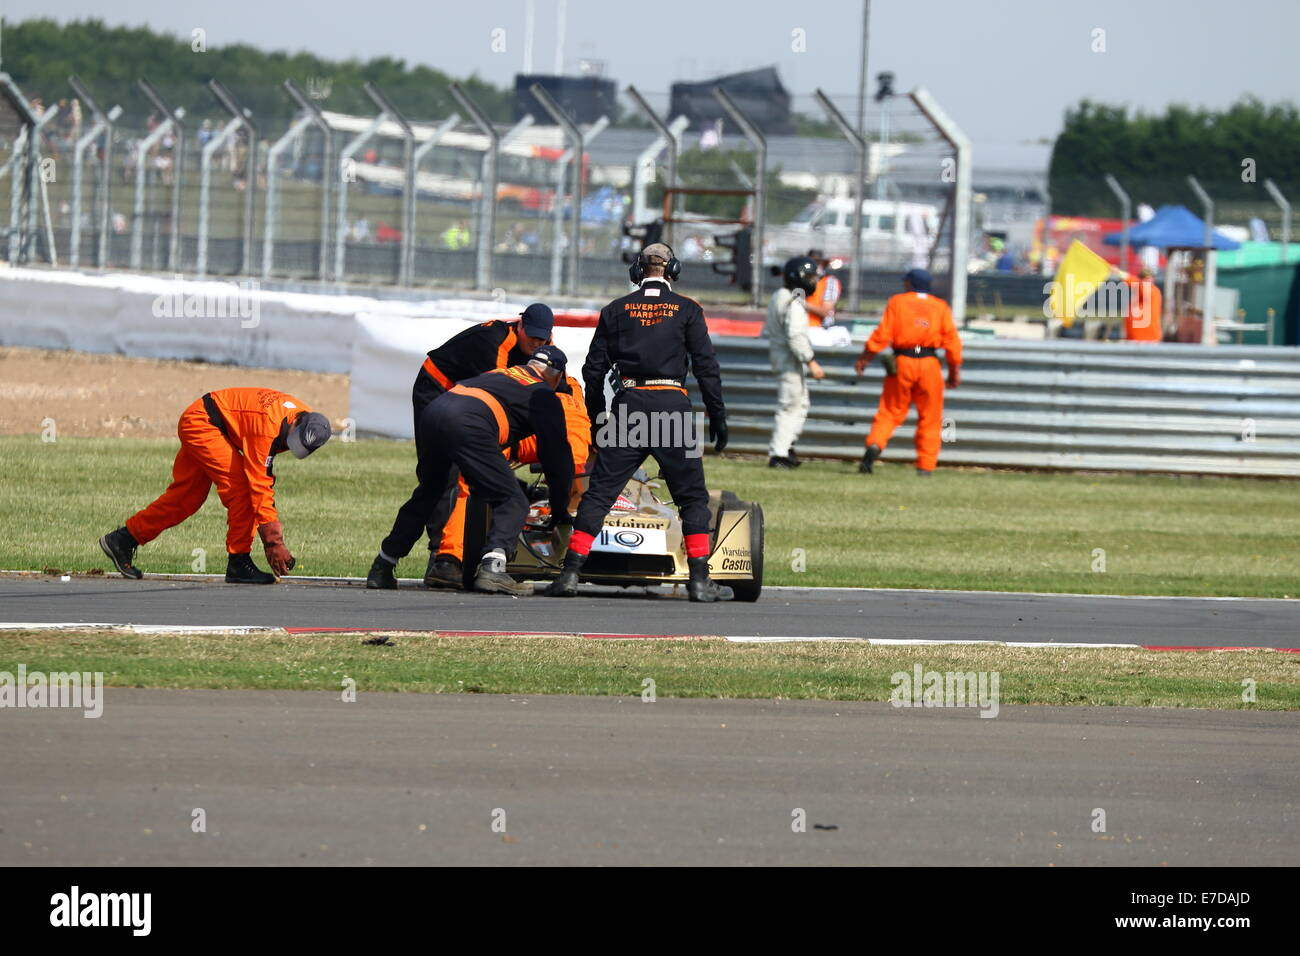 A classic Formula 3 car crashes and rolls over during a race for historic racing cars at the Silverstone Classic - Stock Image